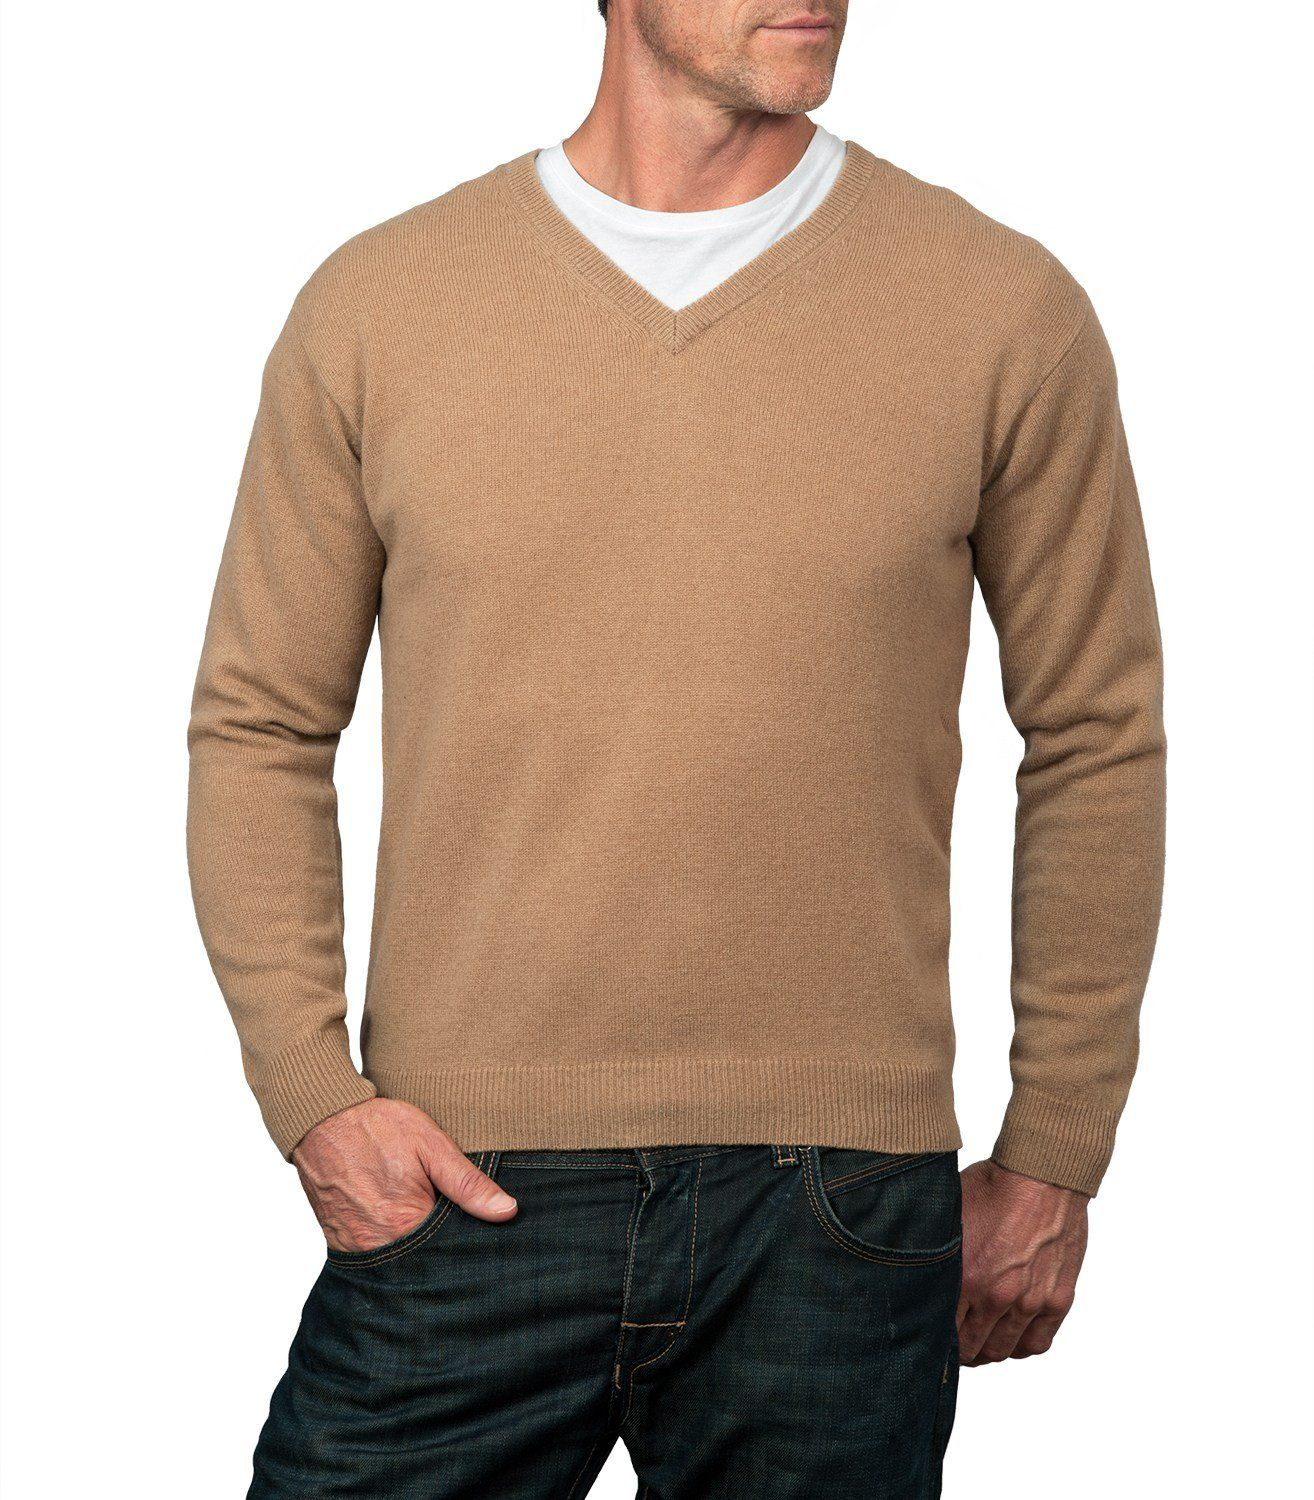 Wool Overs Men S Lambswool V Neck Sweater At Amazon Men S Clothing Store Pullover Sweaters Amazon 35 Order Medium Ru Sweaters Men Sweater Vneck Sweater [ 1500 x 1314 Pixel ]